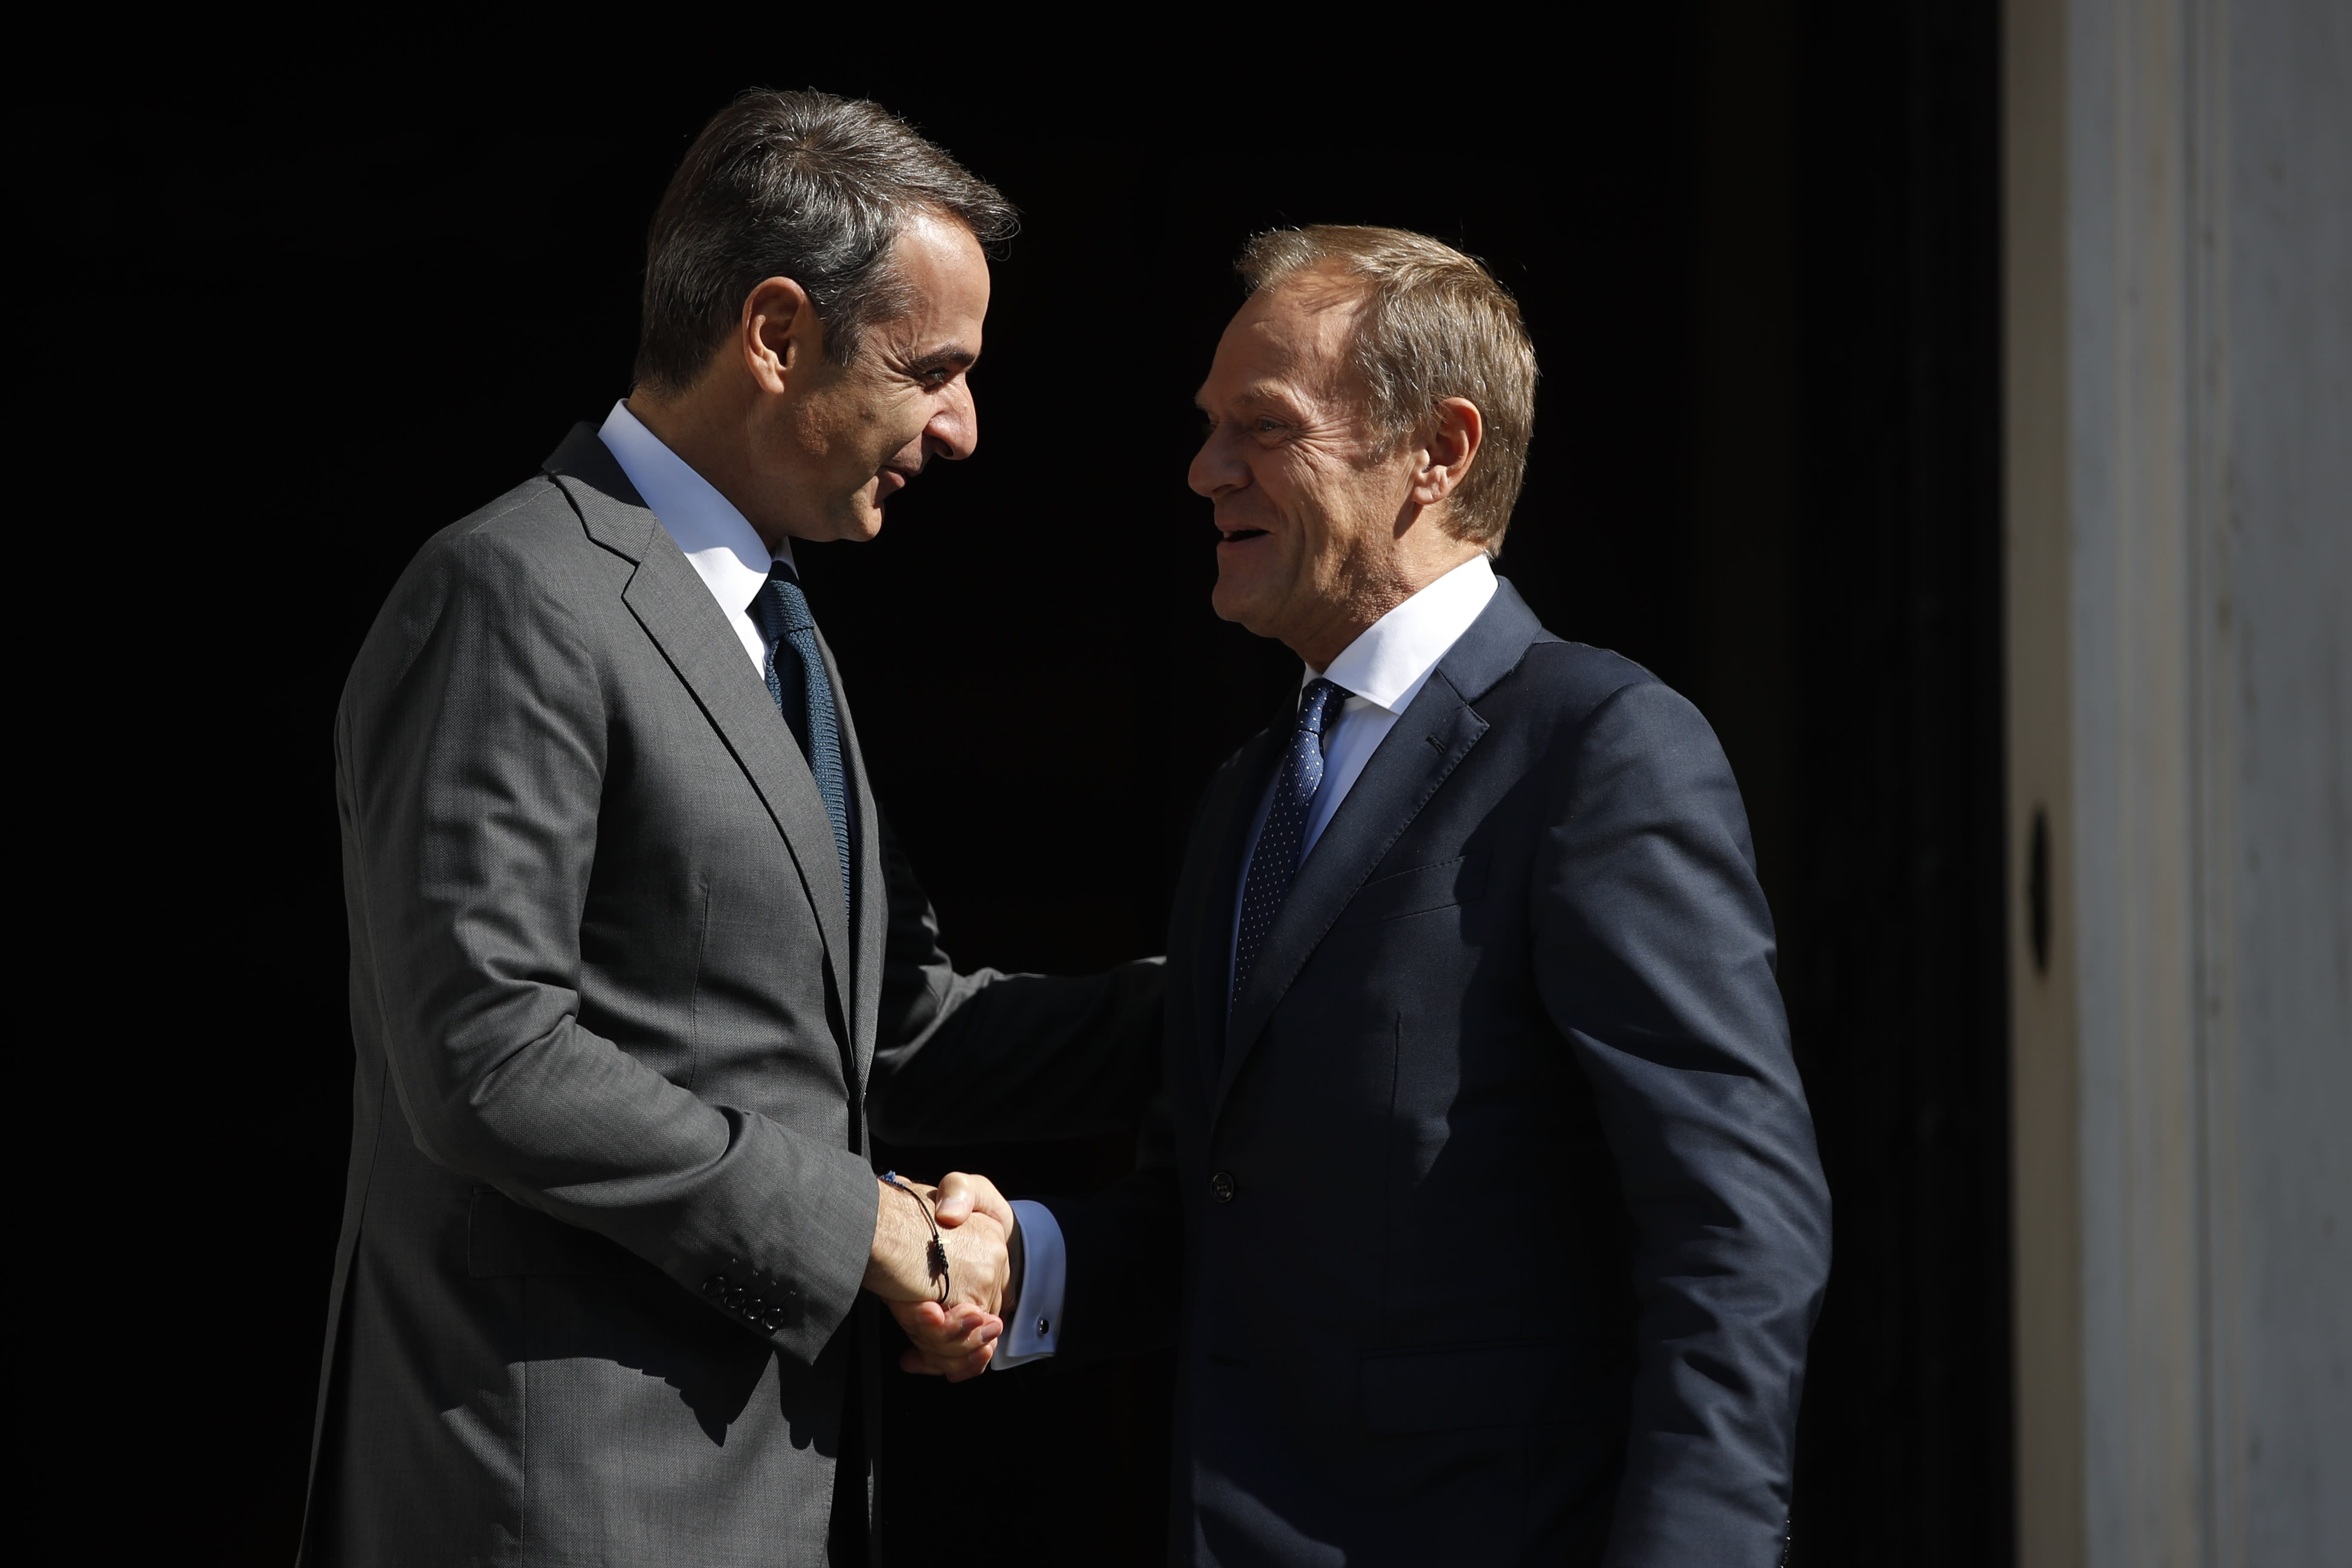 """Greece's Prime Minister Kyriakos Mitsotakis, left, welcomes the European Council President Donald Tusk during their metering at Maximos Mansion in Athens, Wednesday, Oct. 9, 2019. EU leaders have demanded more """"realism"""" from Britain in response to a Brexit plan proposed by British Prime Minister Boris Johnson. (AP Photo/Thanassis Stavrakis)"""